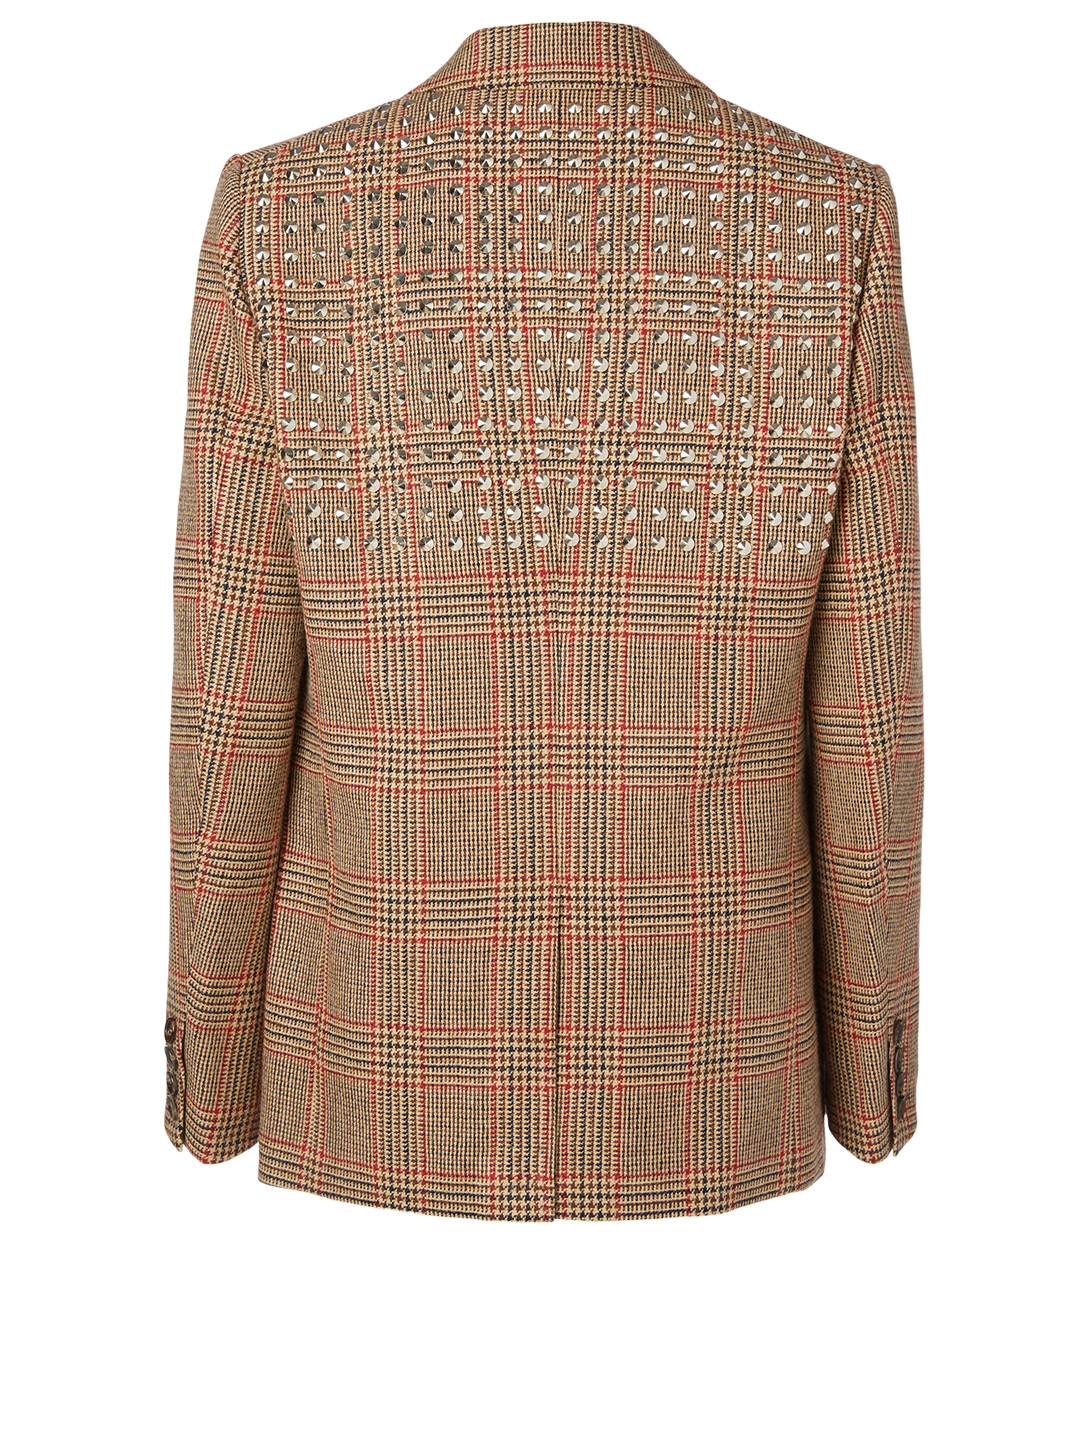 JUNYA WATANABE Wool And Linen Blazer In Check Print Women's Beige